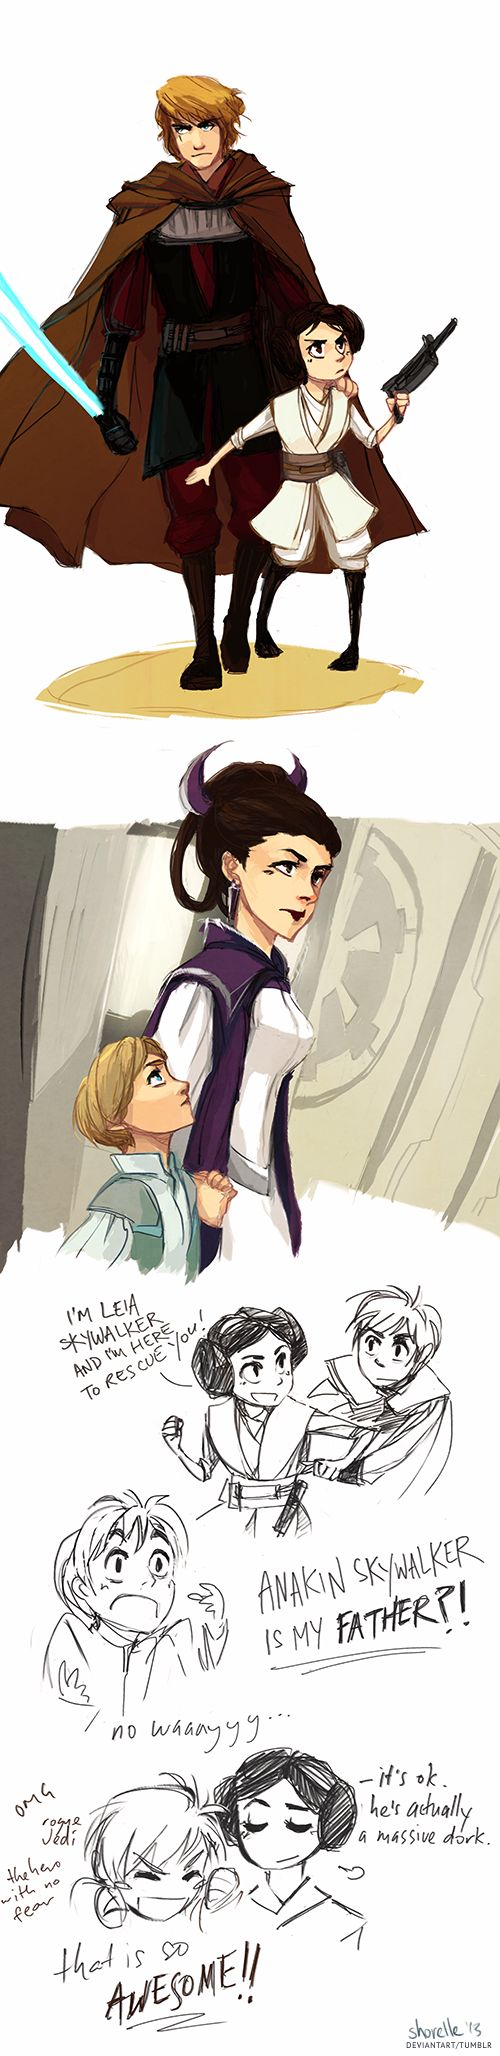 This is an AU where Anakin never turned to the darks side, however the galaxy still became an empire. because of this, Anakin took his daughter, Leia, and left to fight with the rebels. Padme on the other hand raised Luke on Coruscant where she was a senator/spy for the rebels. Somehow Luke and Leia met and found out they were siblings. Luke is very excited about who his father is.